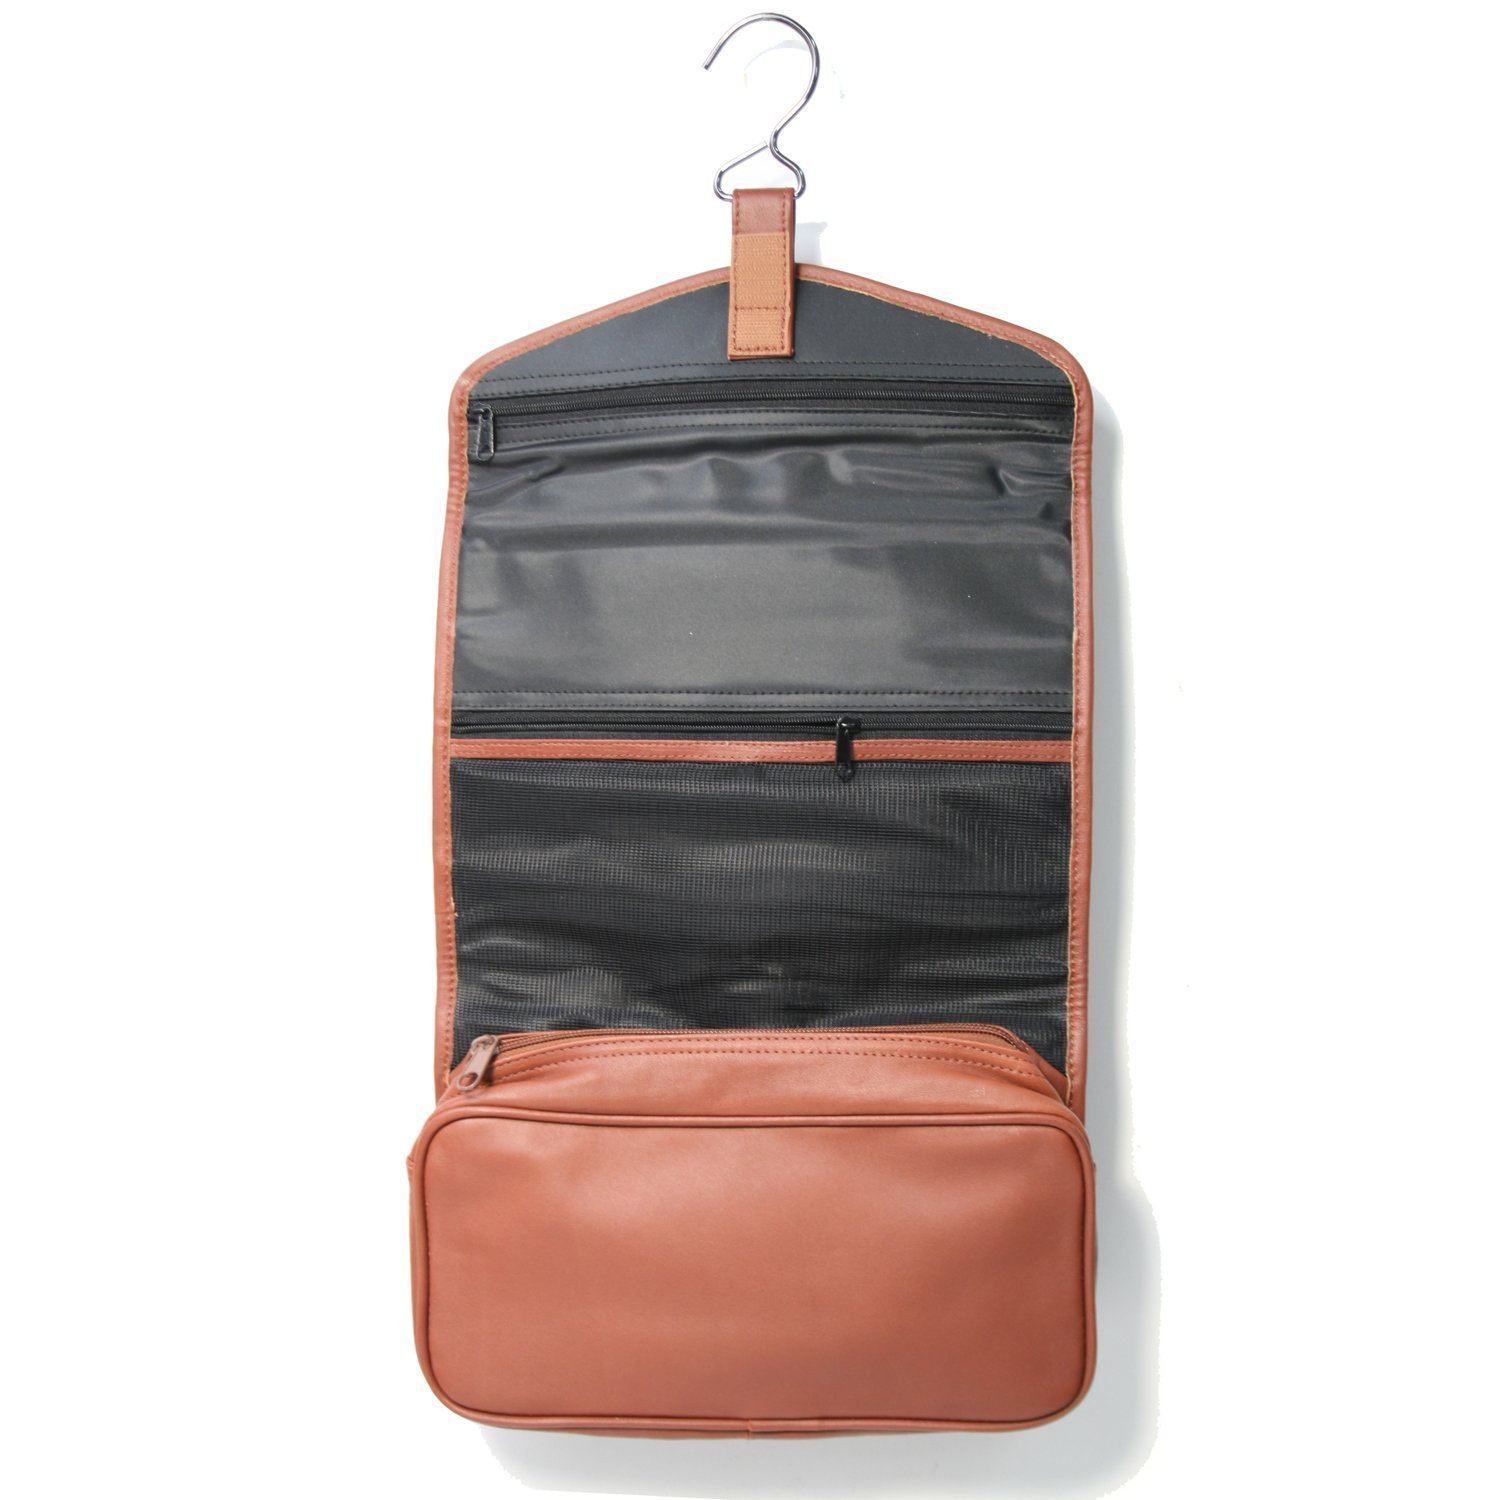 Royce Leather Hanging Toiletry Bag (Tan) by Royce Leather